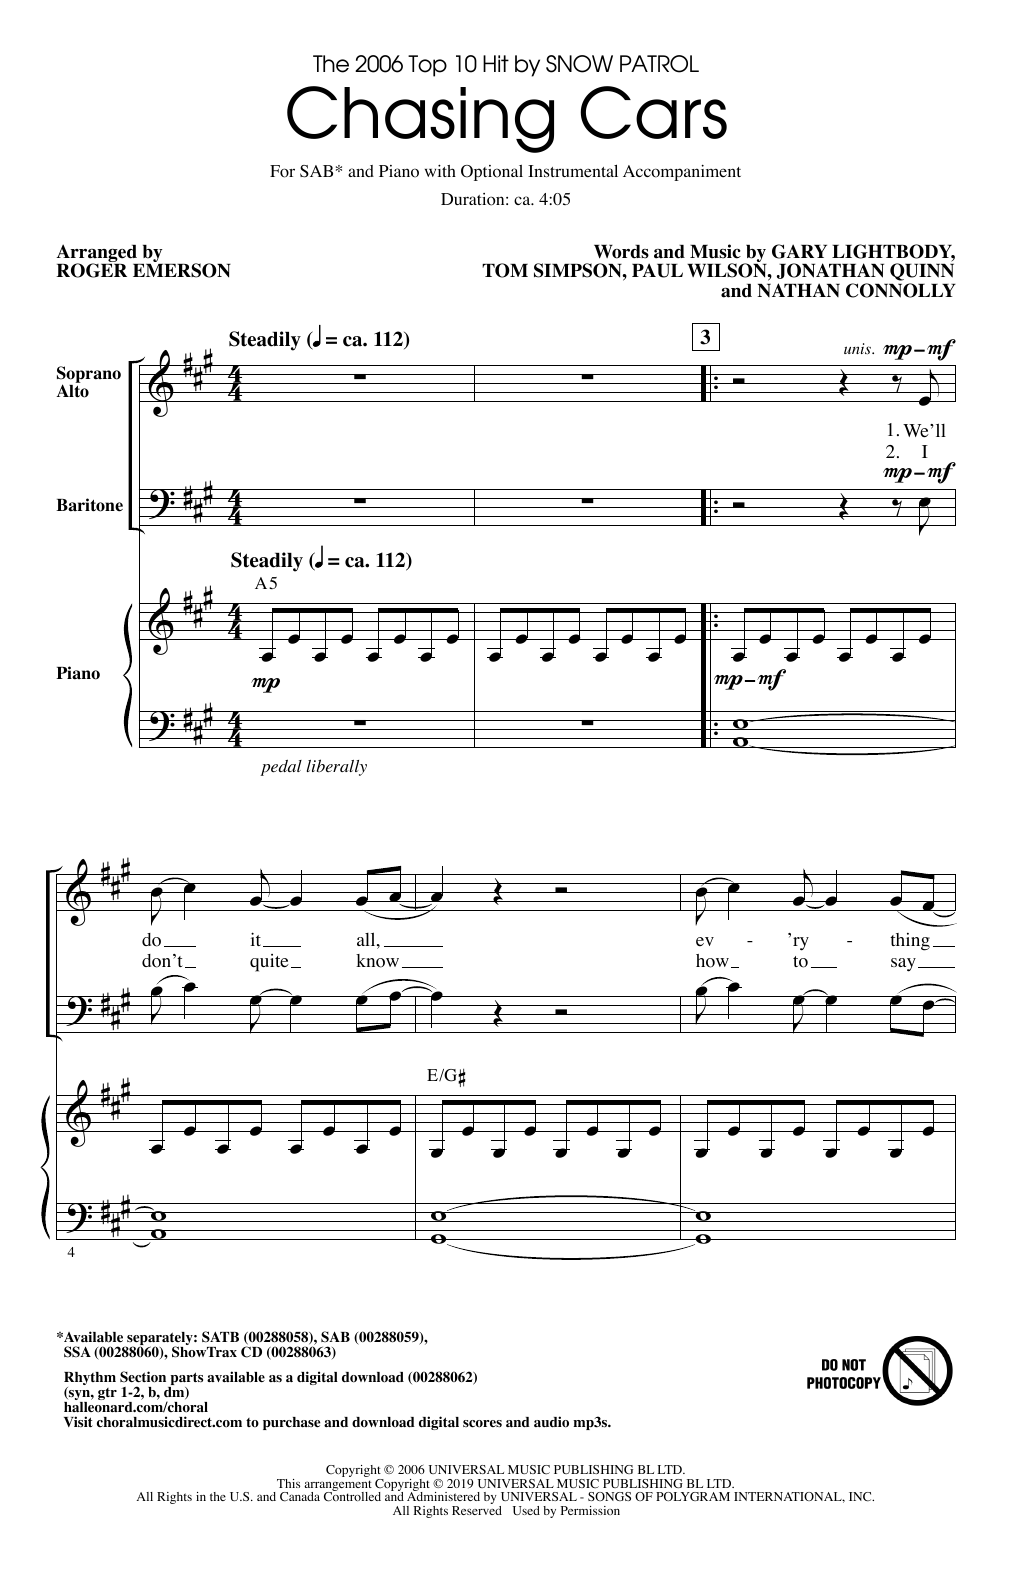 Snow Patrol Chasing Cars (arr. Roger Emerson) sheet music notes and chords. Download Printable PDF.